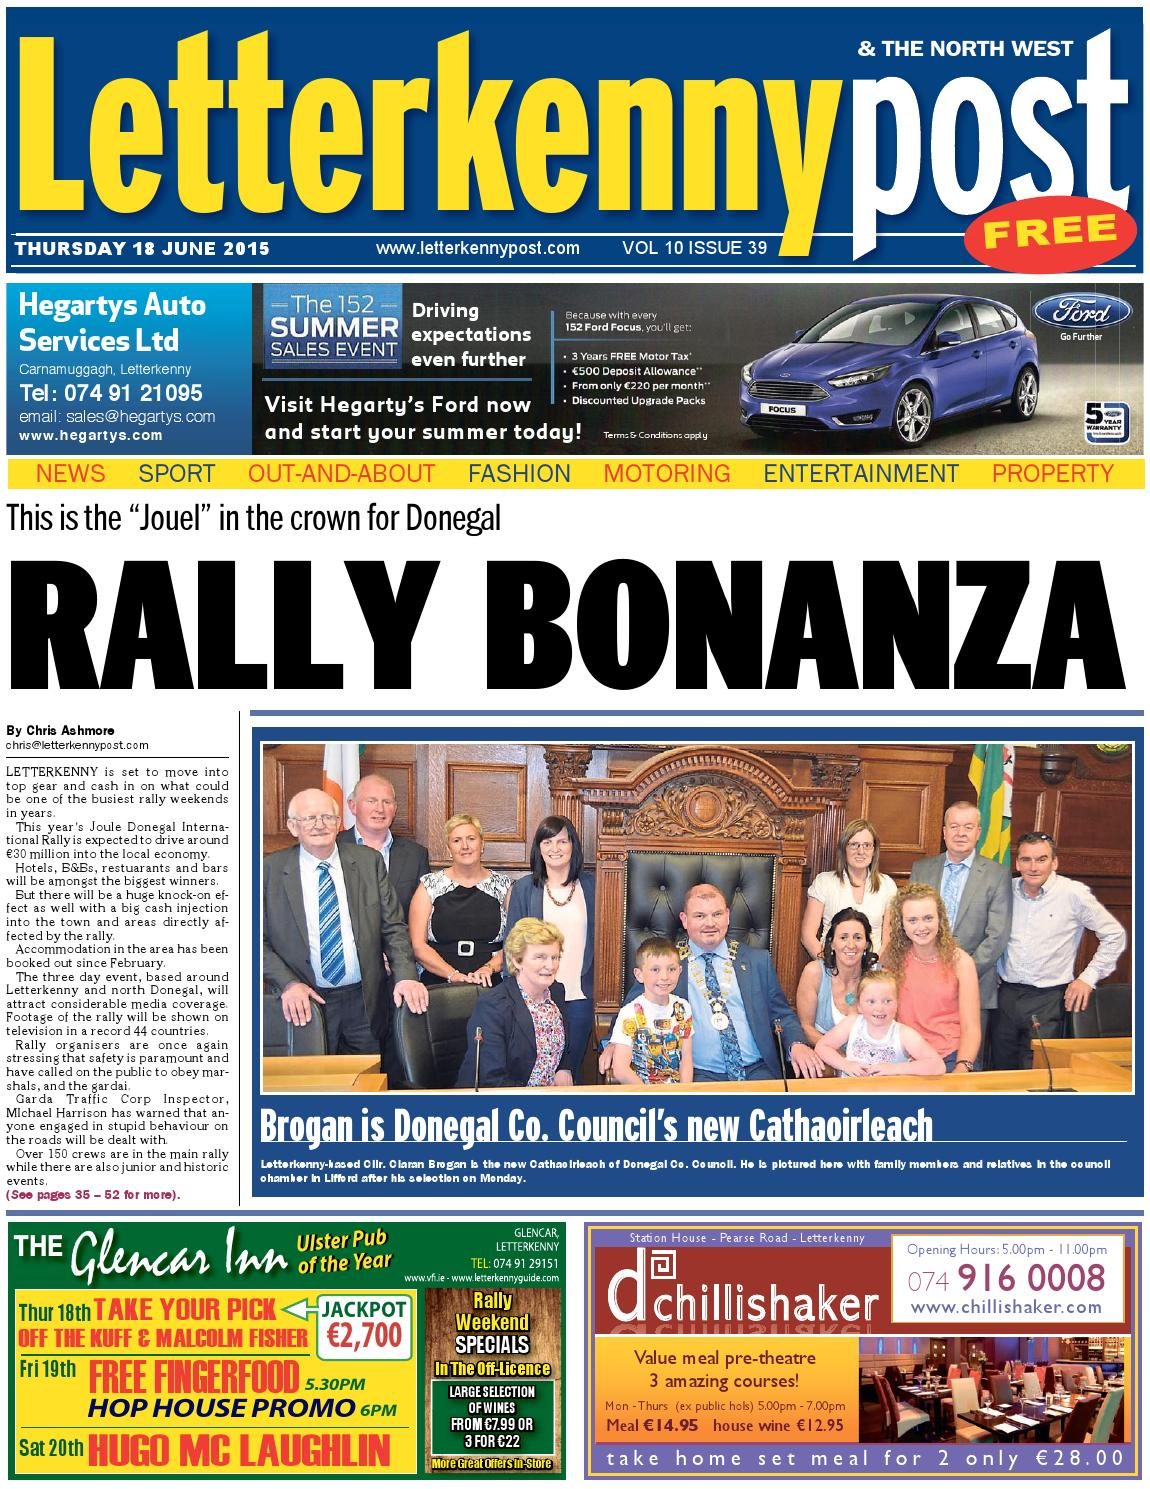 18 June 15 Letterkenny Post By River Media Newspapers Issuu